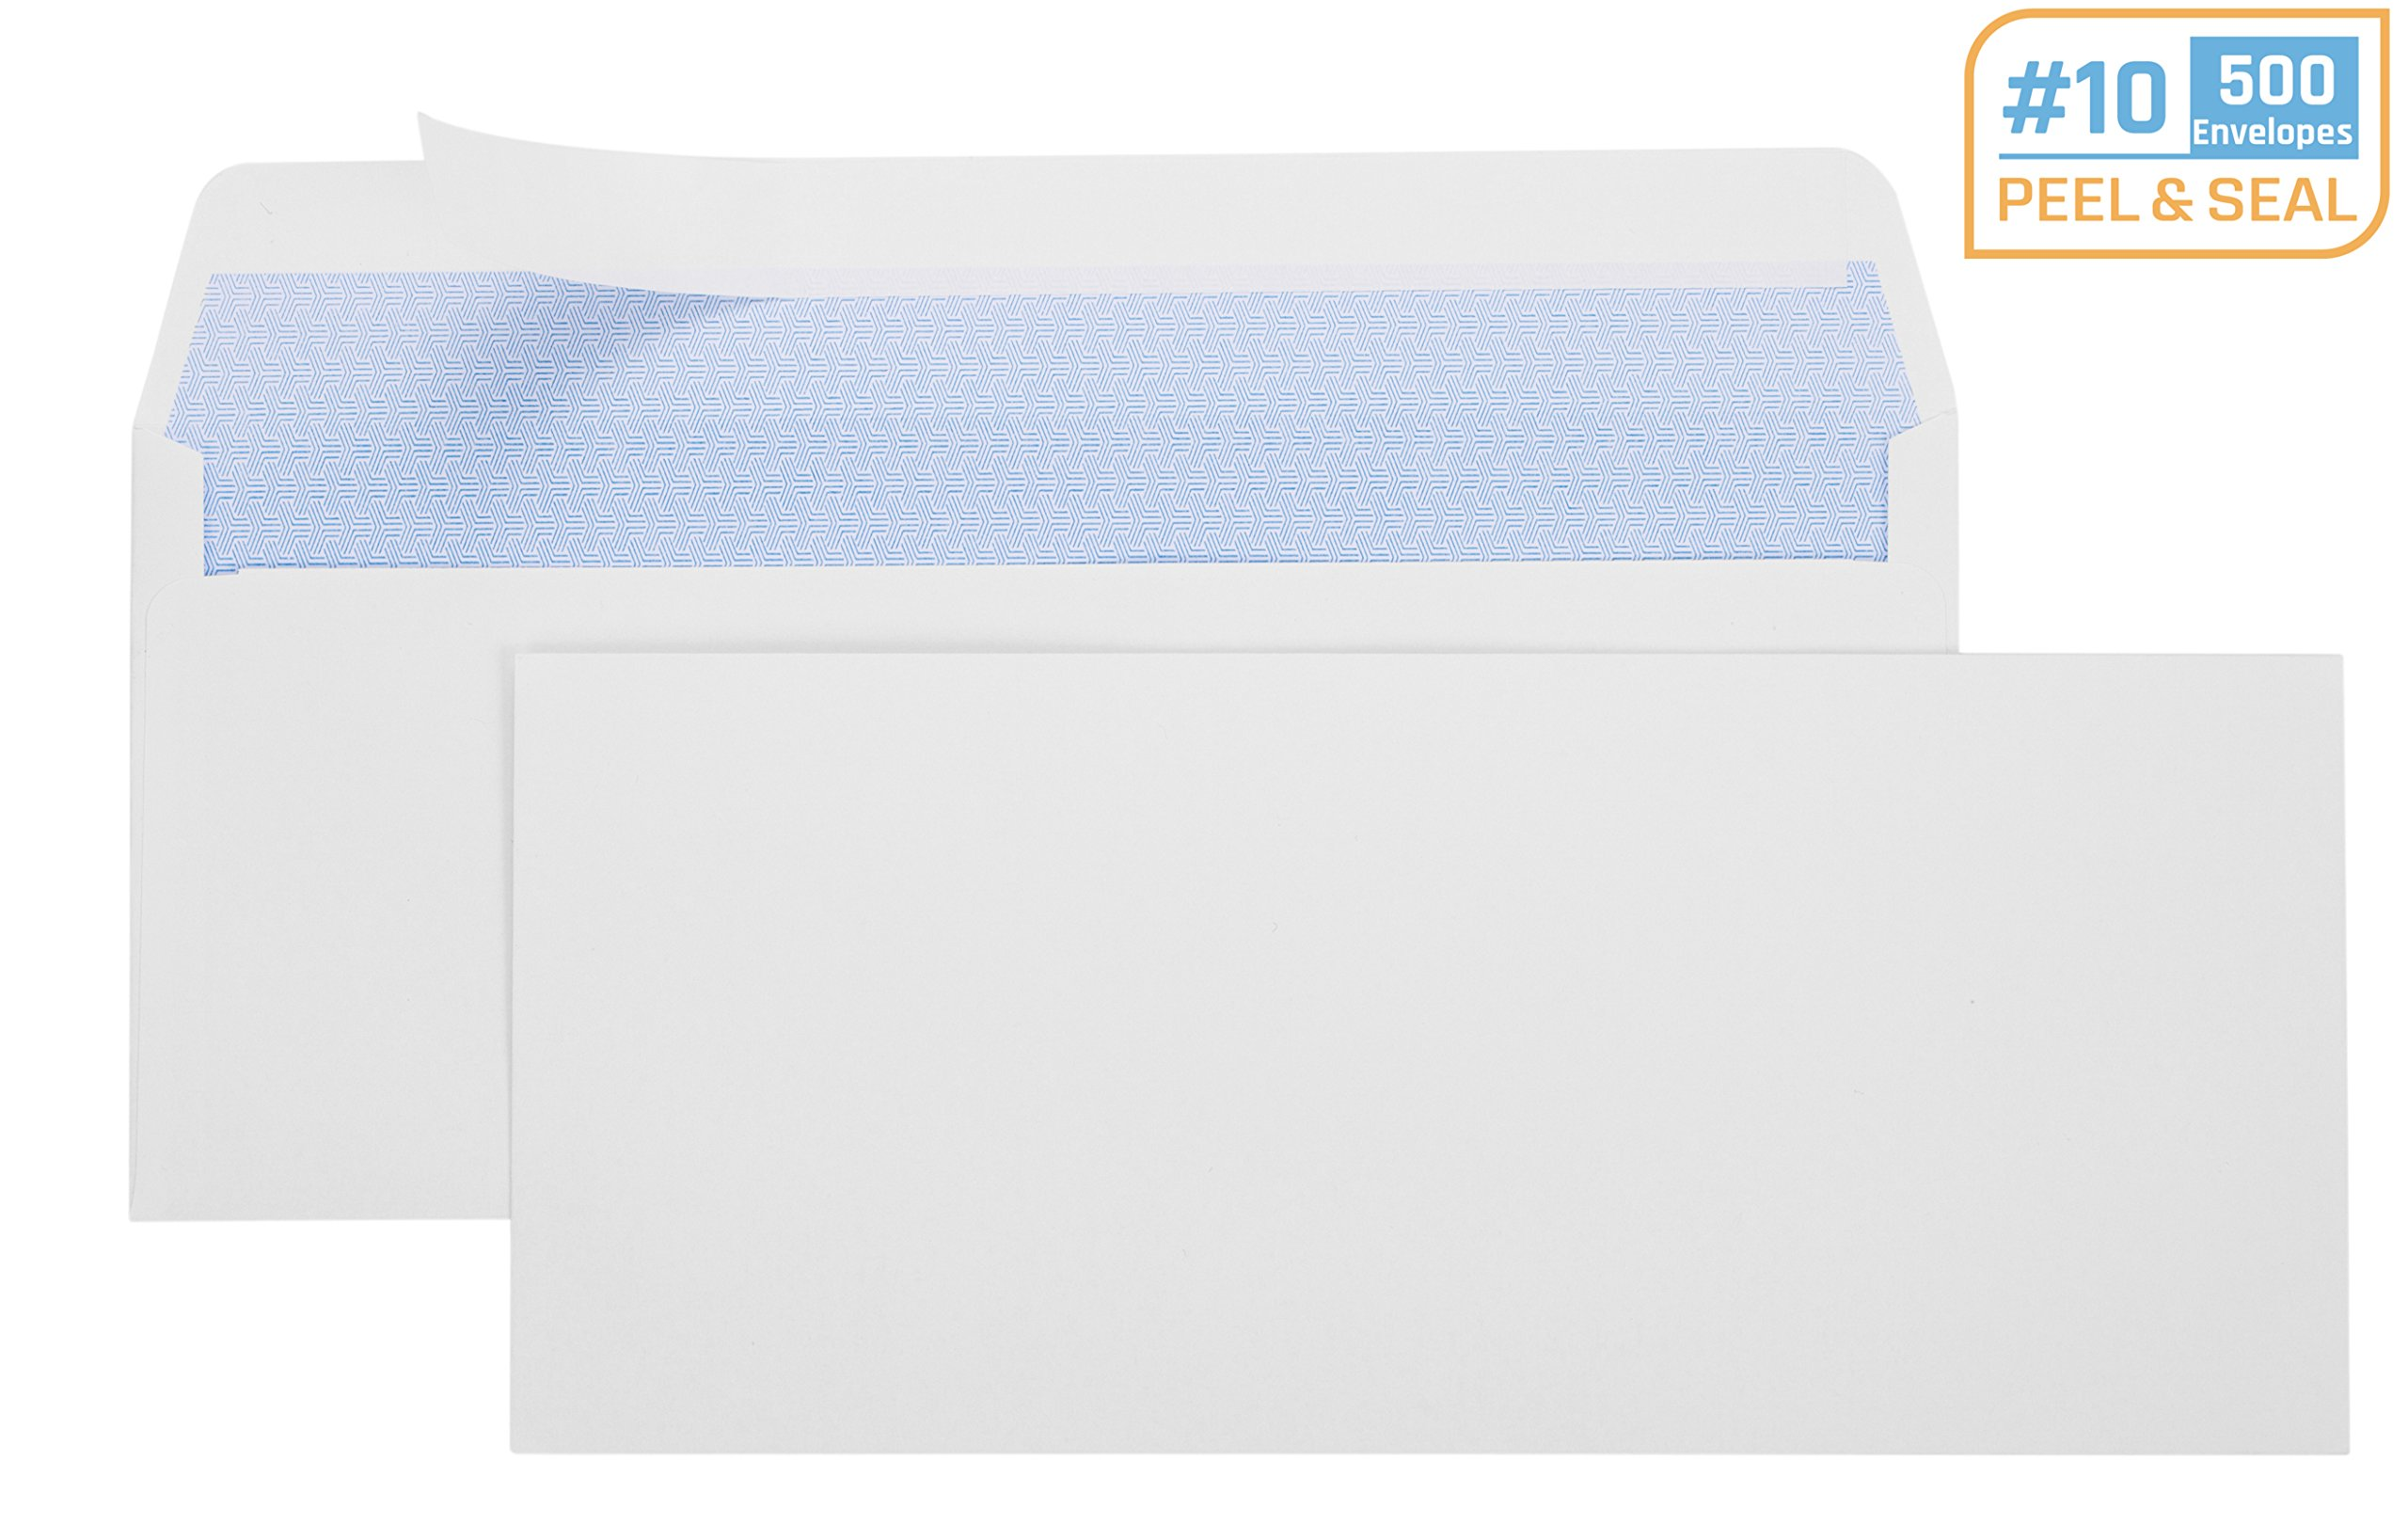 Office Deed 500 #10 Envelopes SELF SEAL Business Envelope Windowless Design, Security Tint Pattern for Secure Mailing, Invoices, Statements & Legal Document, 4-1/8 x 9-1/2 Inches